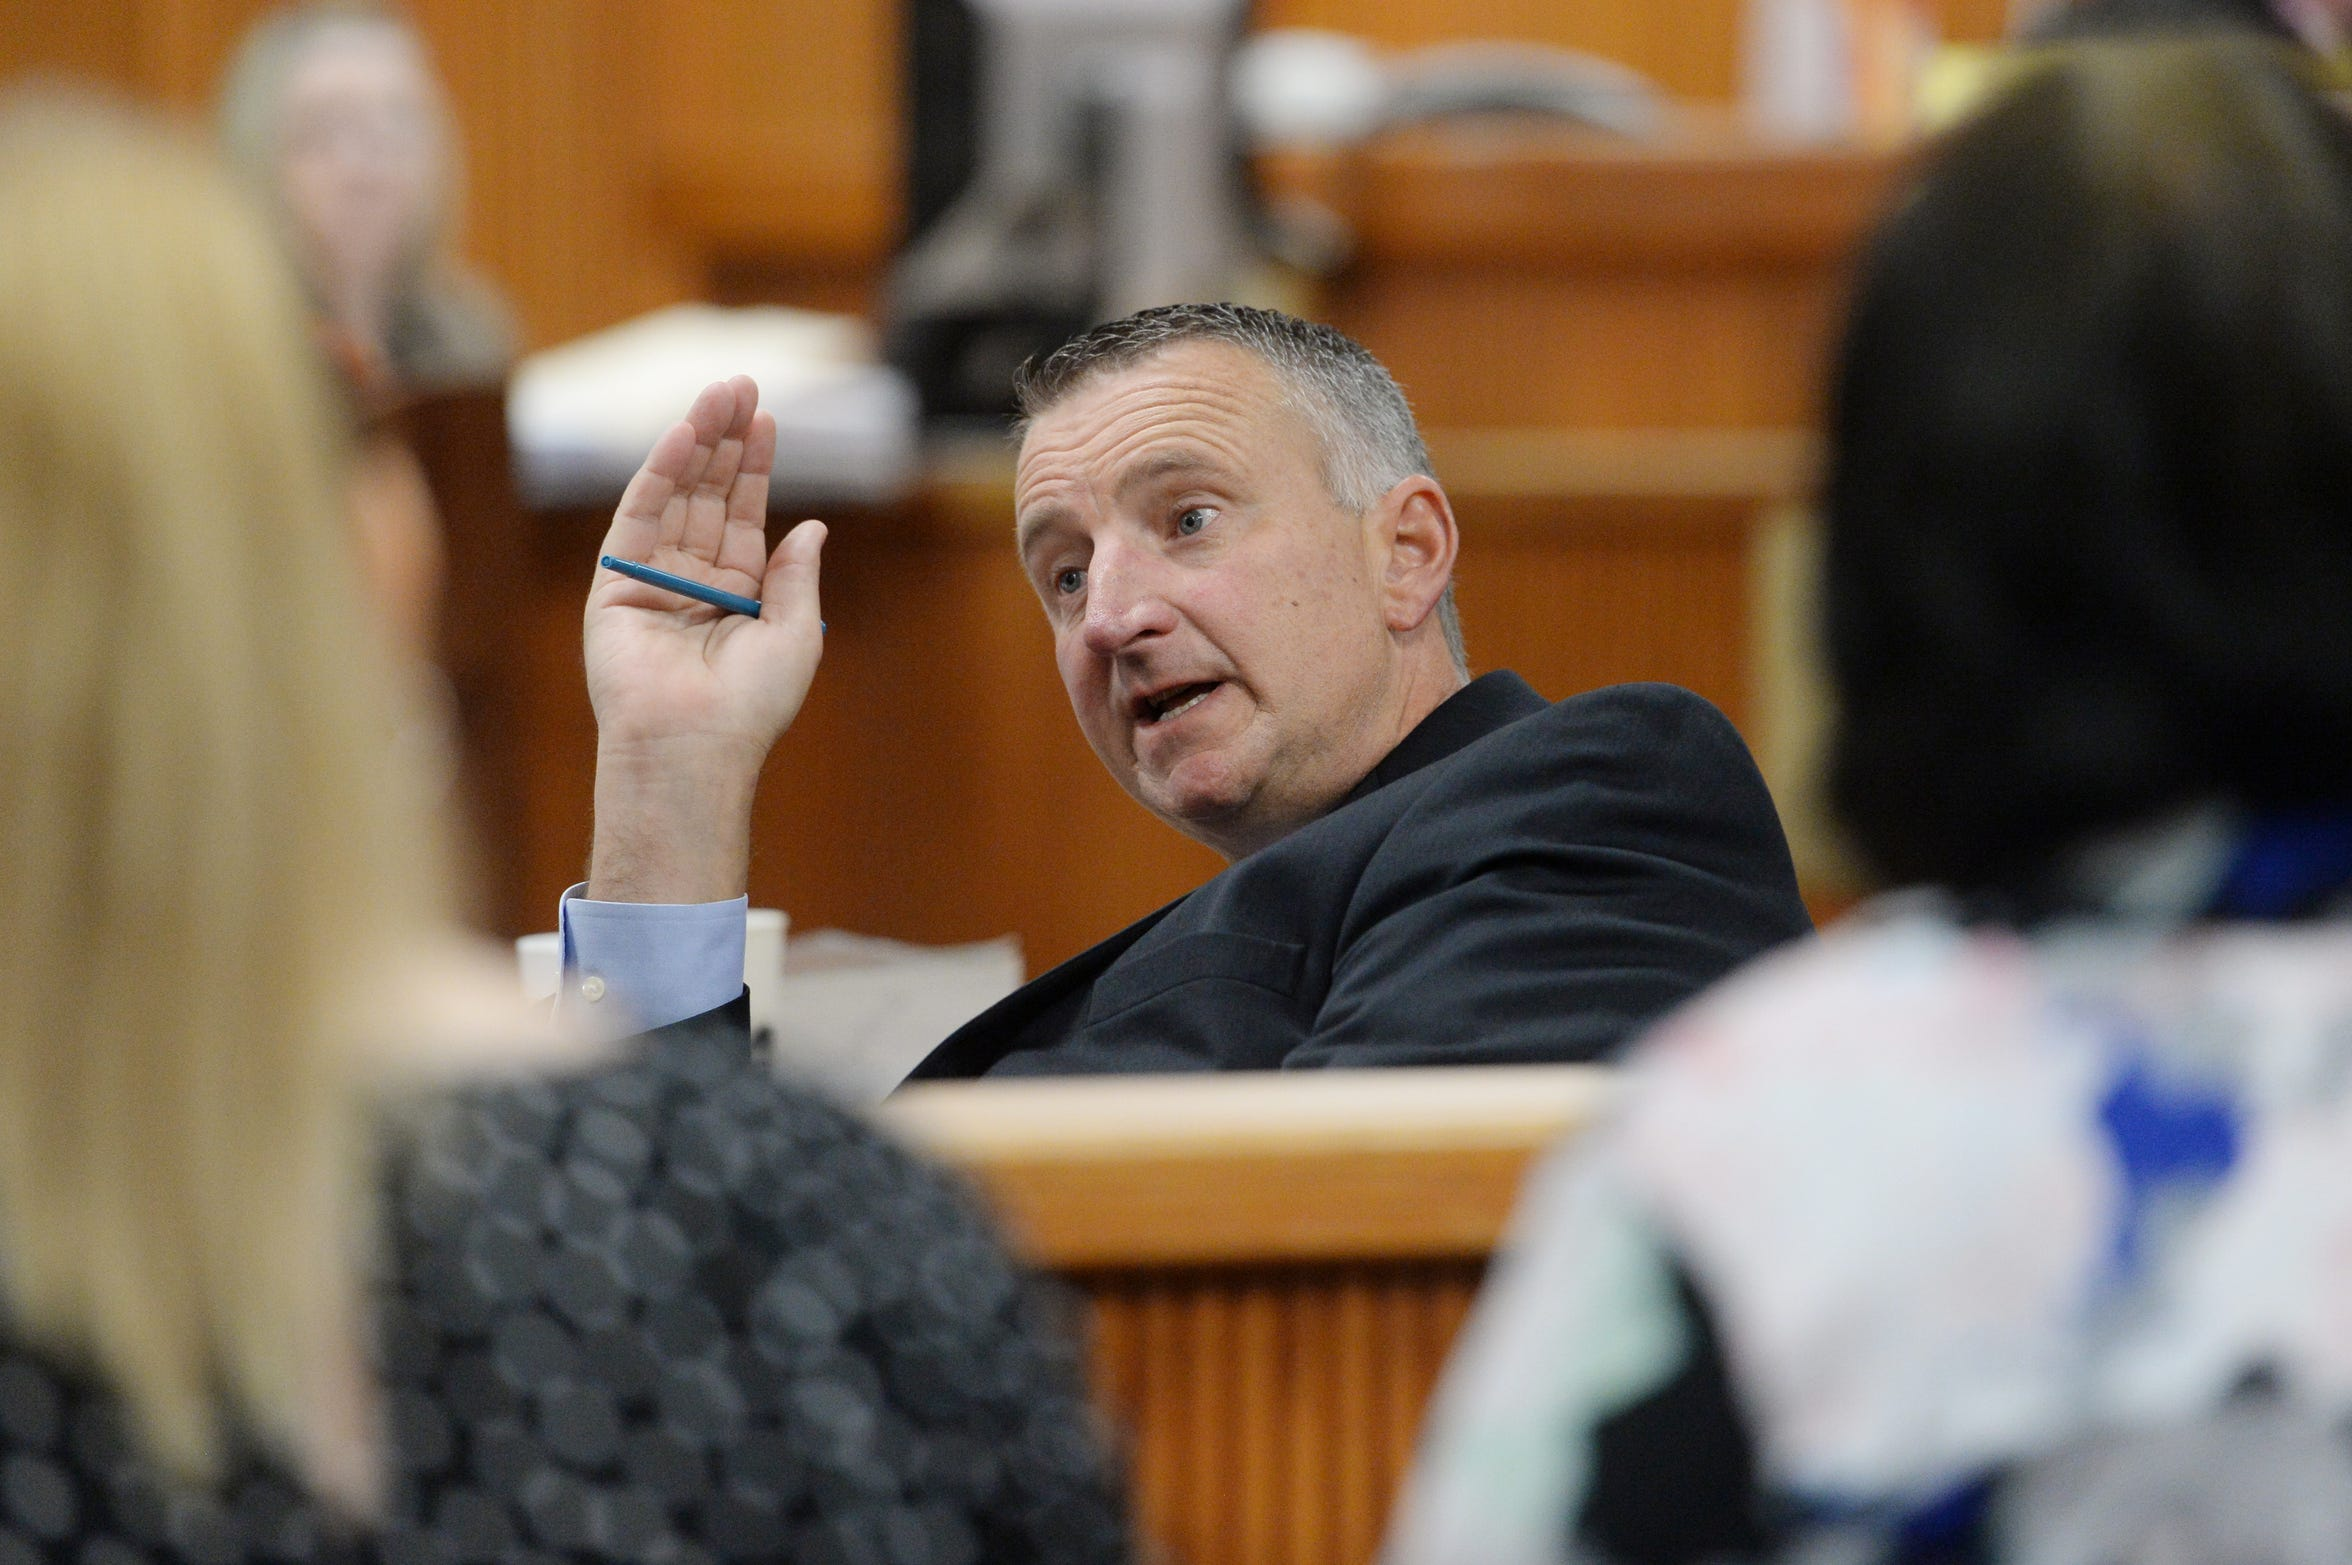 Chief Assistant State Attorney Tom Bakkedahl sits in court waiting for the start of the second day of the resentencing hearing of convicted juvenile killer Tyler Hadley on Tuesday, Oct. 2, 2018 at the St. Lucie Courthouse in Fort Pierce. Bakkedahl questioned the medical examiners that performed the autopsies on Hadley's parents, Blake and Mary Jo, which included graphic color photos of their bodies and sketches of their injuries.